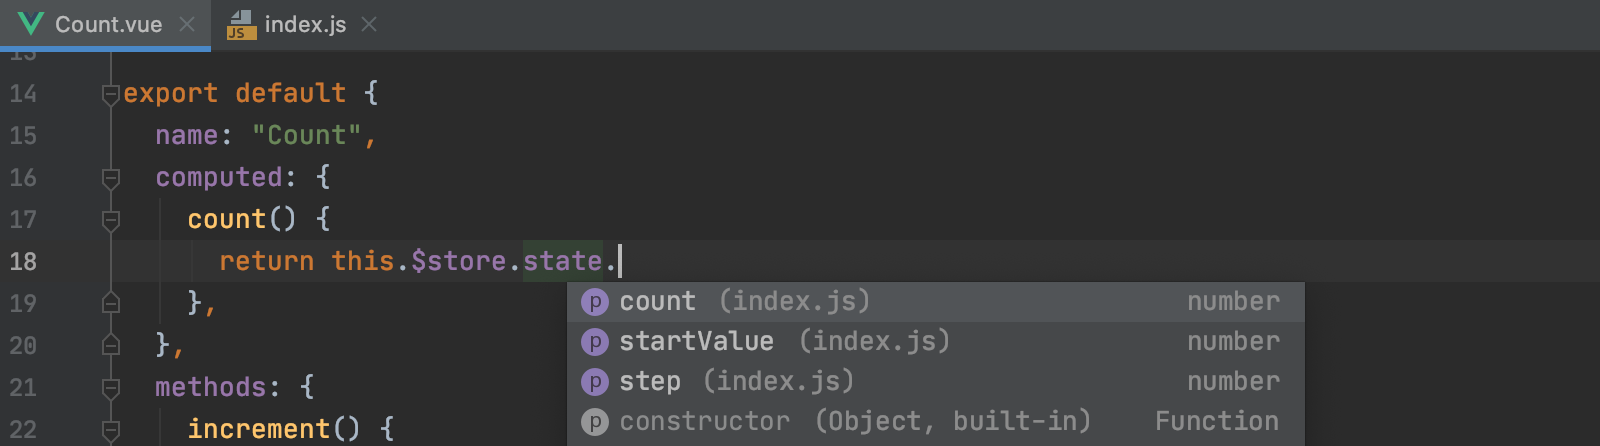 values-from-vuex-state-object